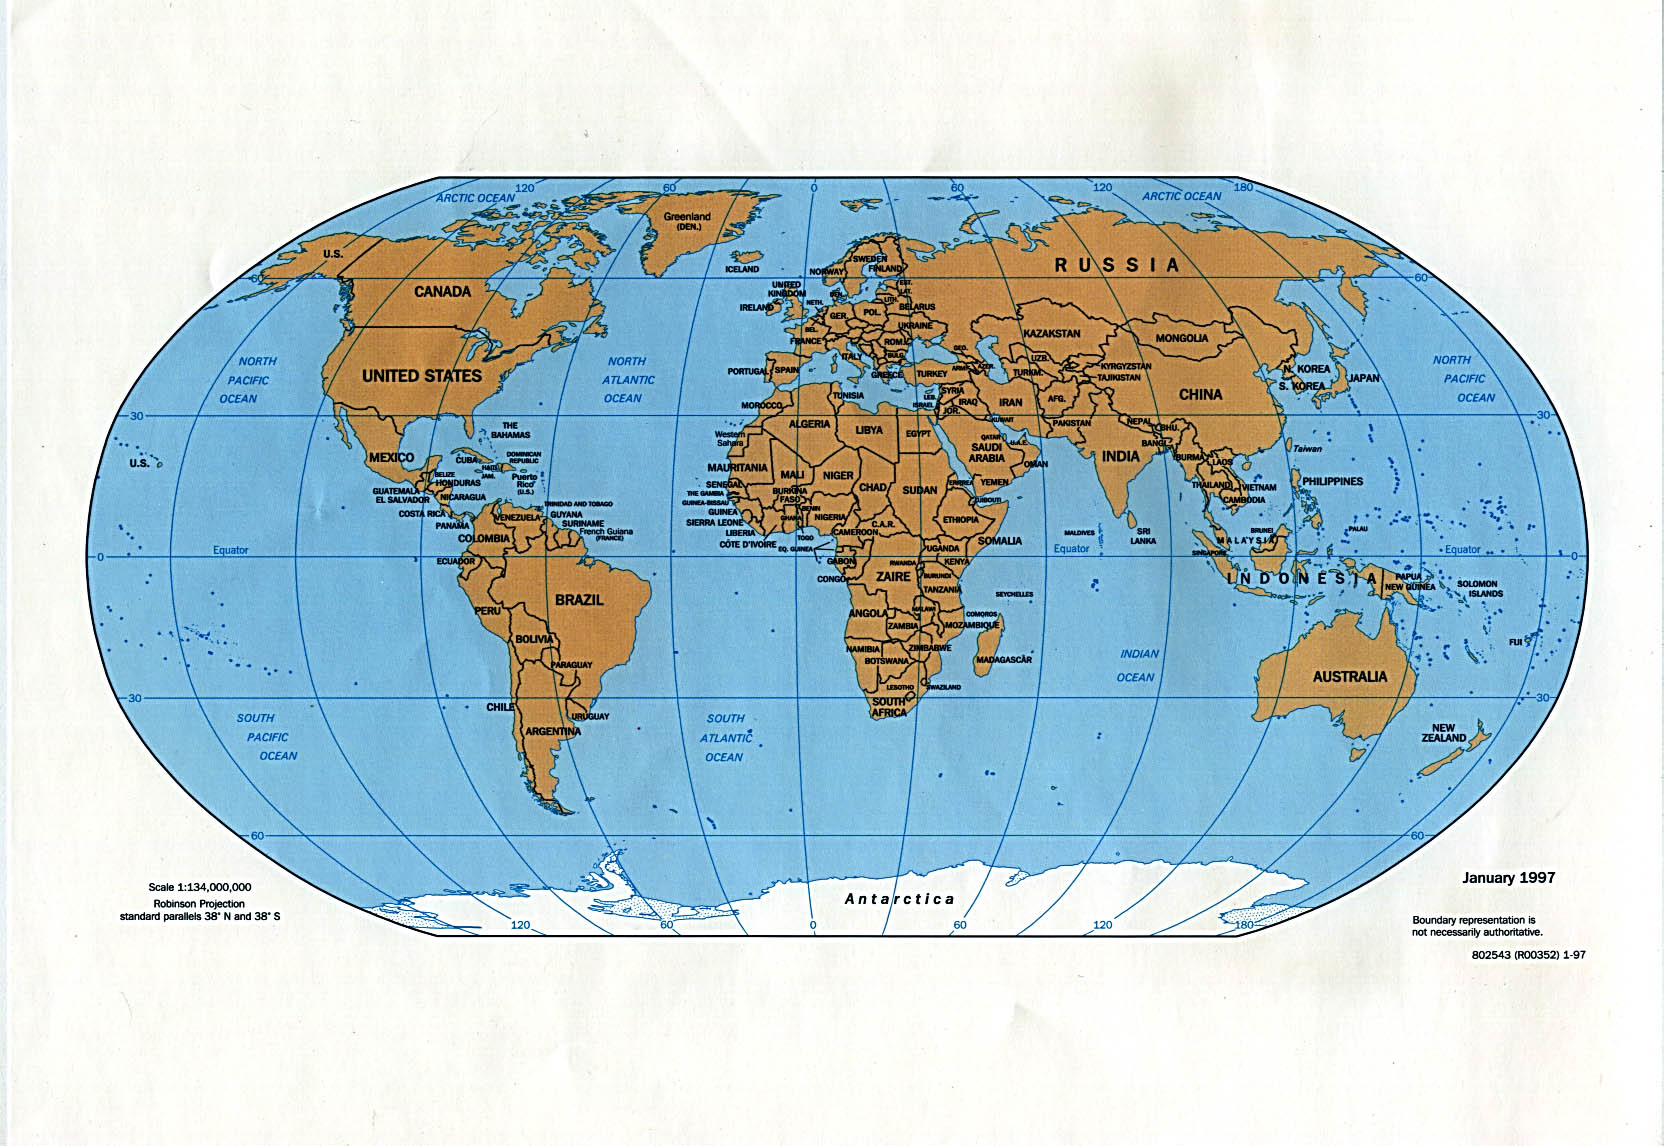 Images Of A World Map.World Maps Perry Castaneda Map Collection Ut Library Online